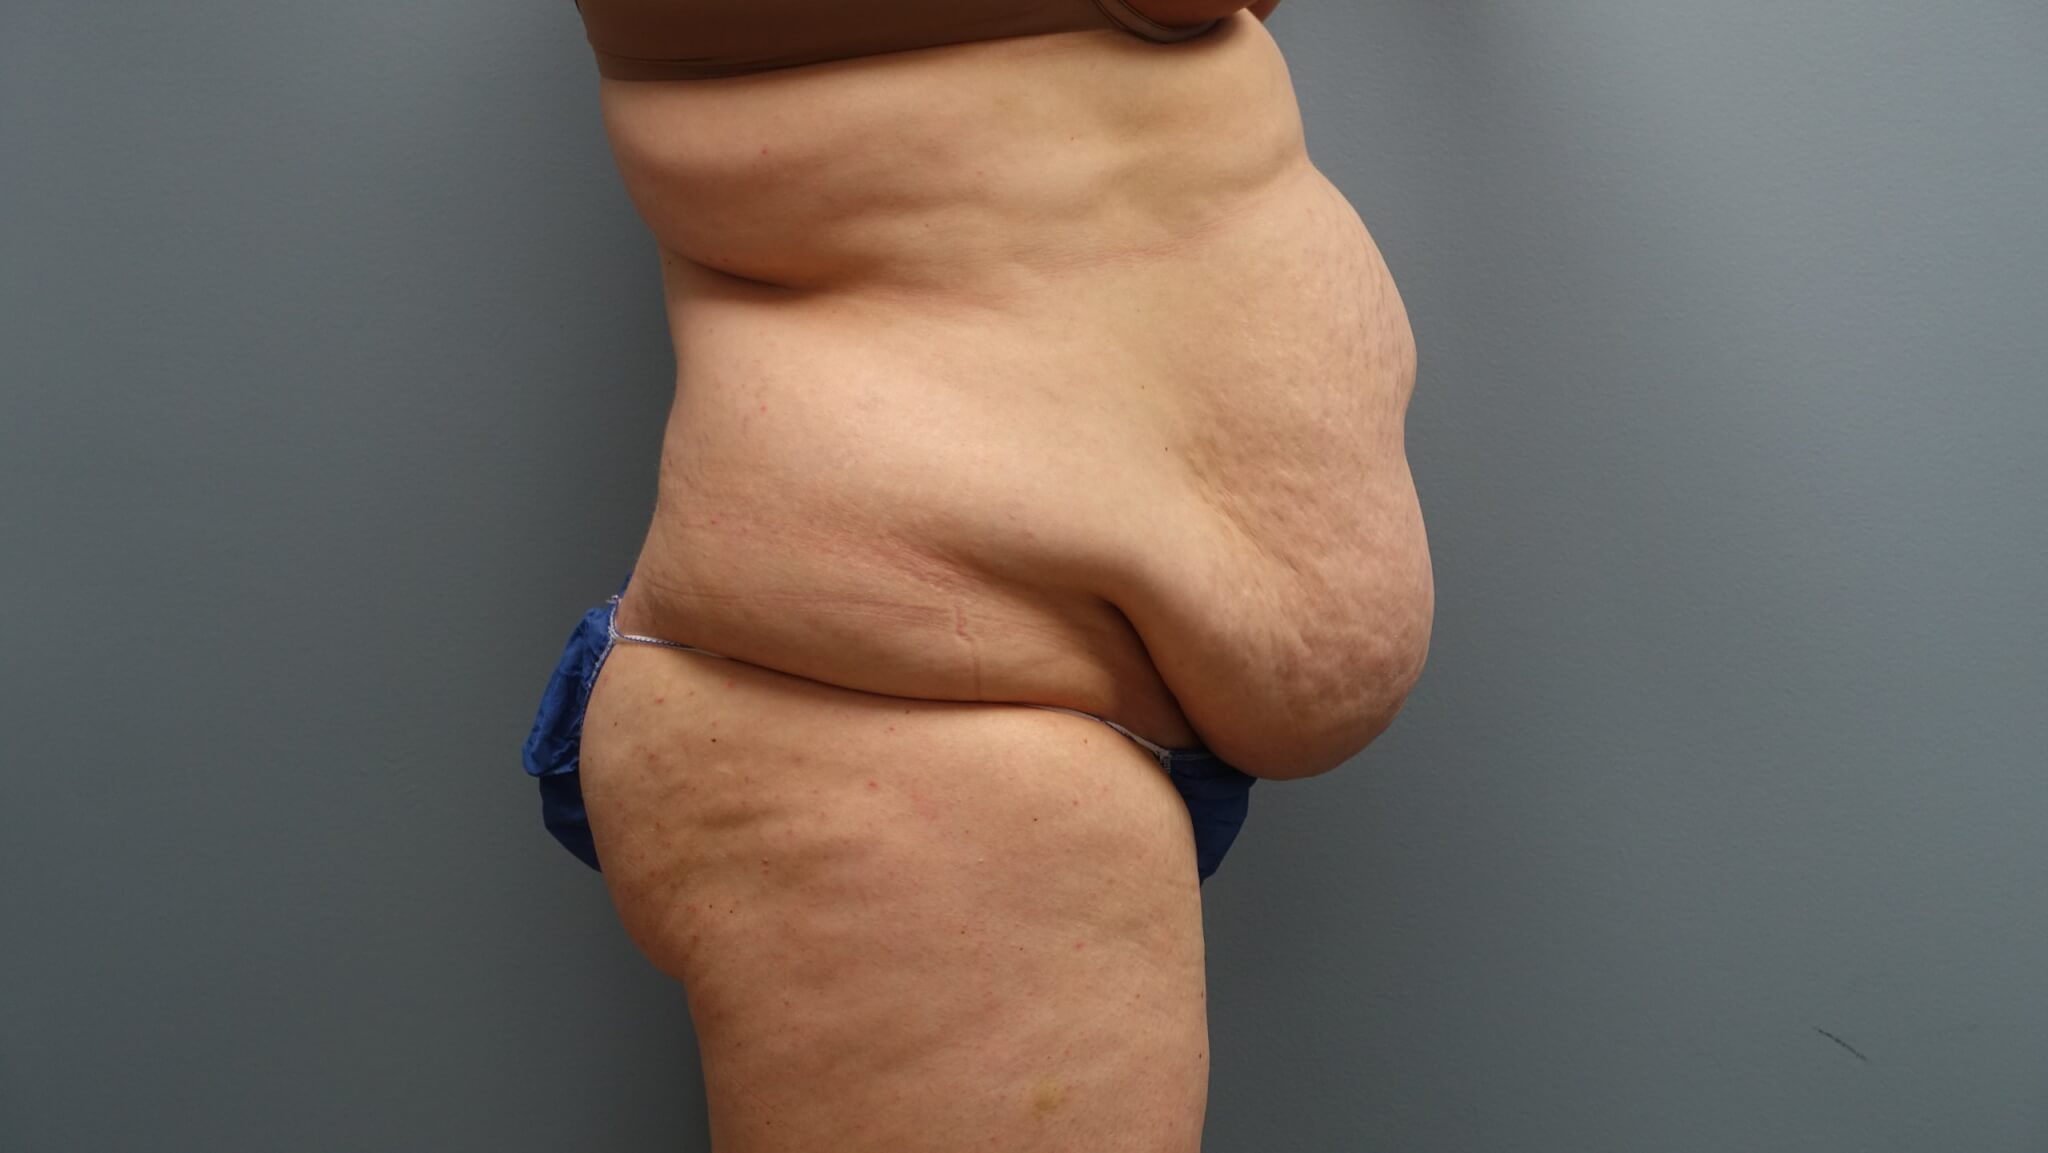 Before Tummy Tuck with Liposuction and Muscle Repair